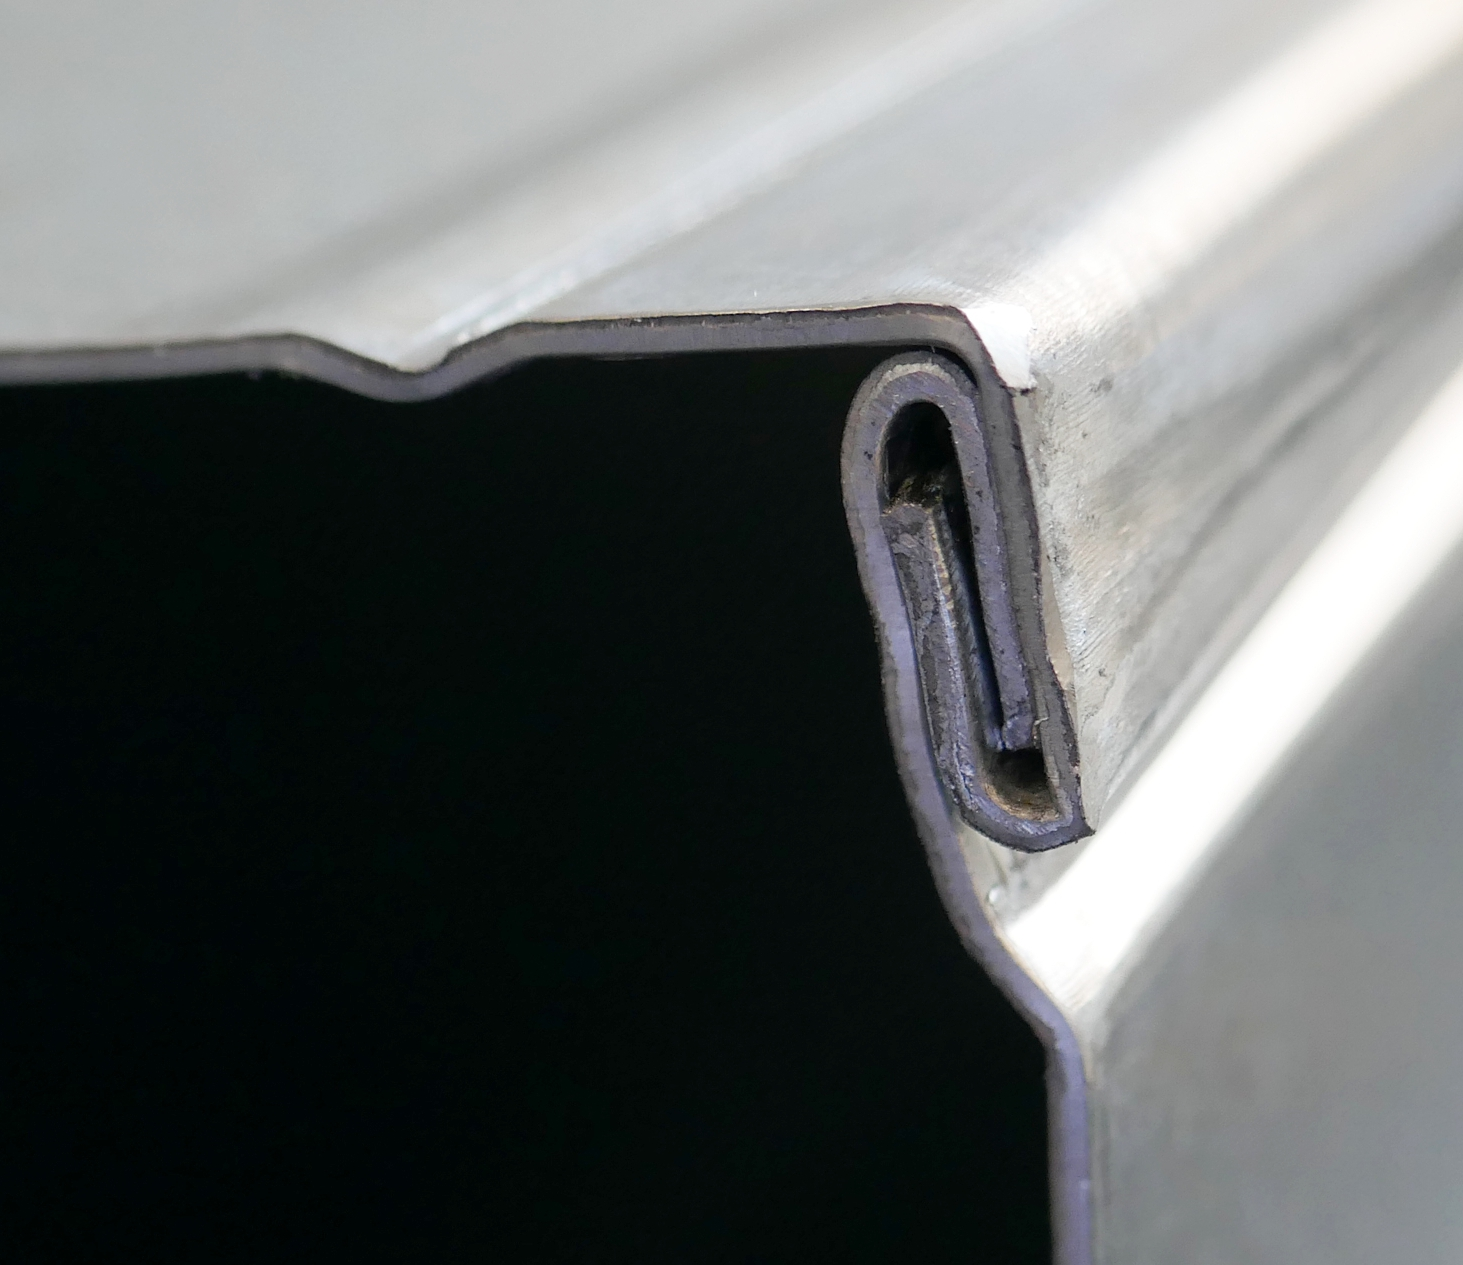 Duct seam on a 0.8 mm sheet